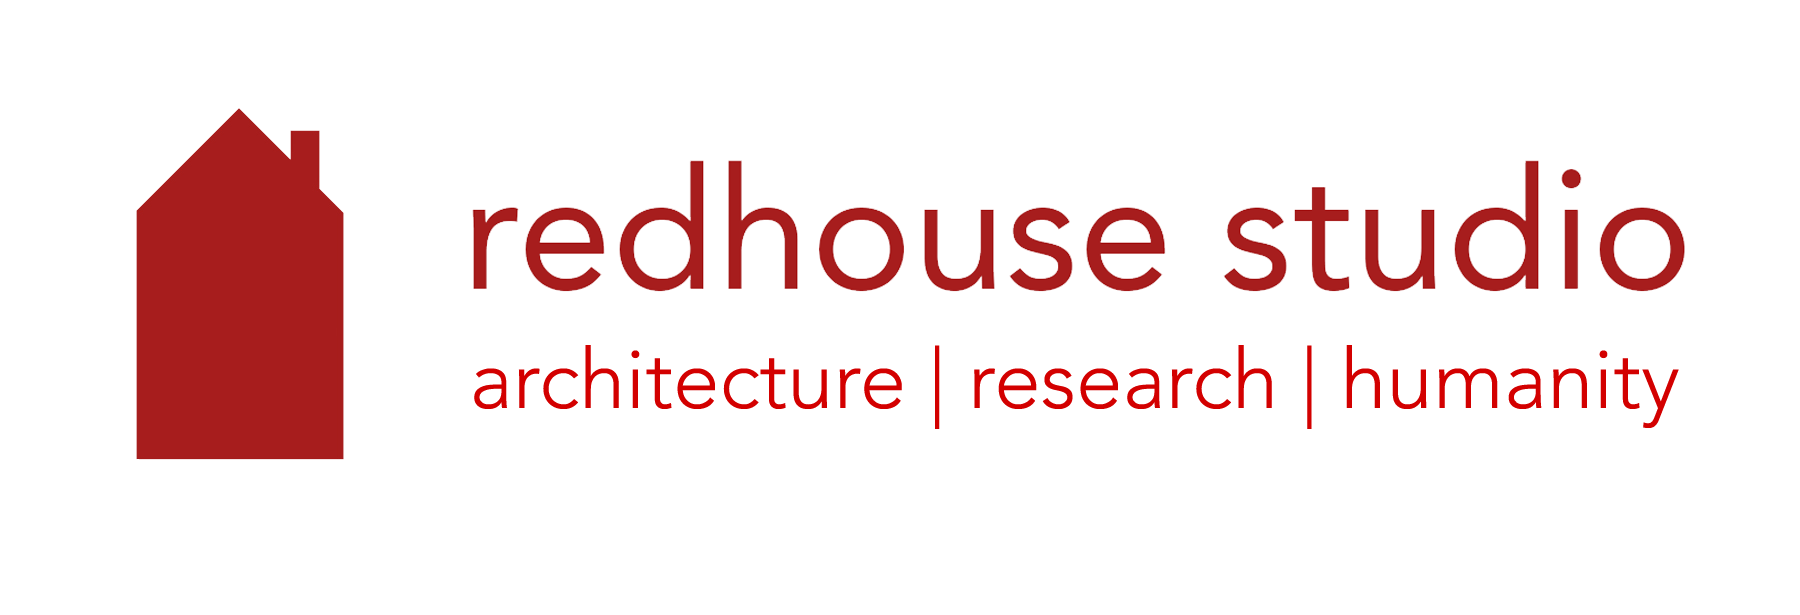 redhouse arh transparent.png